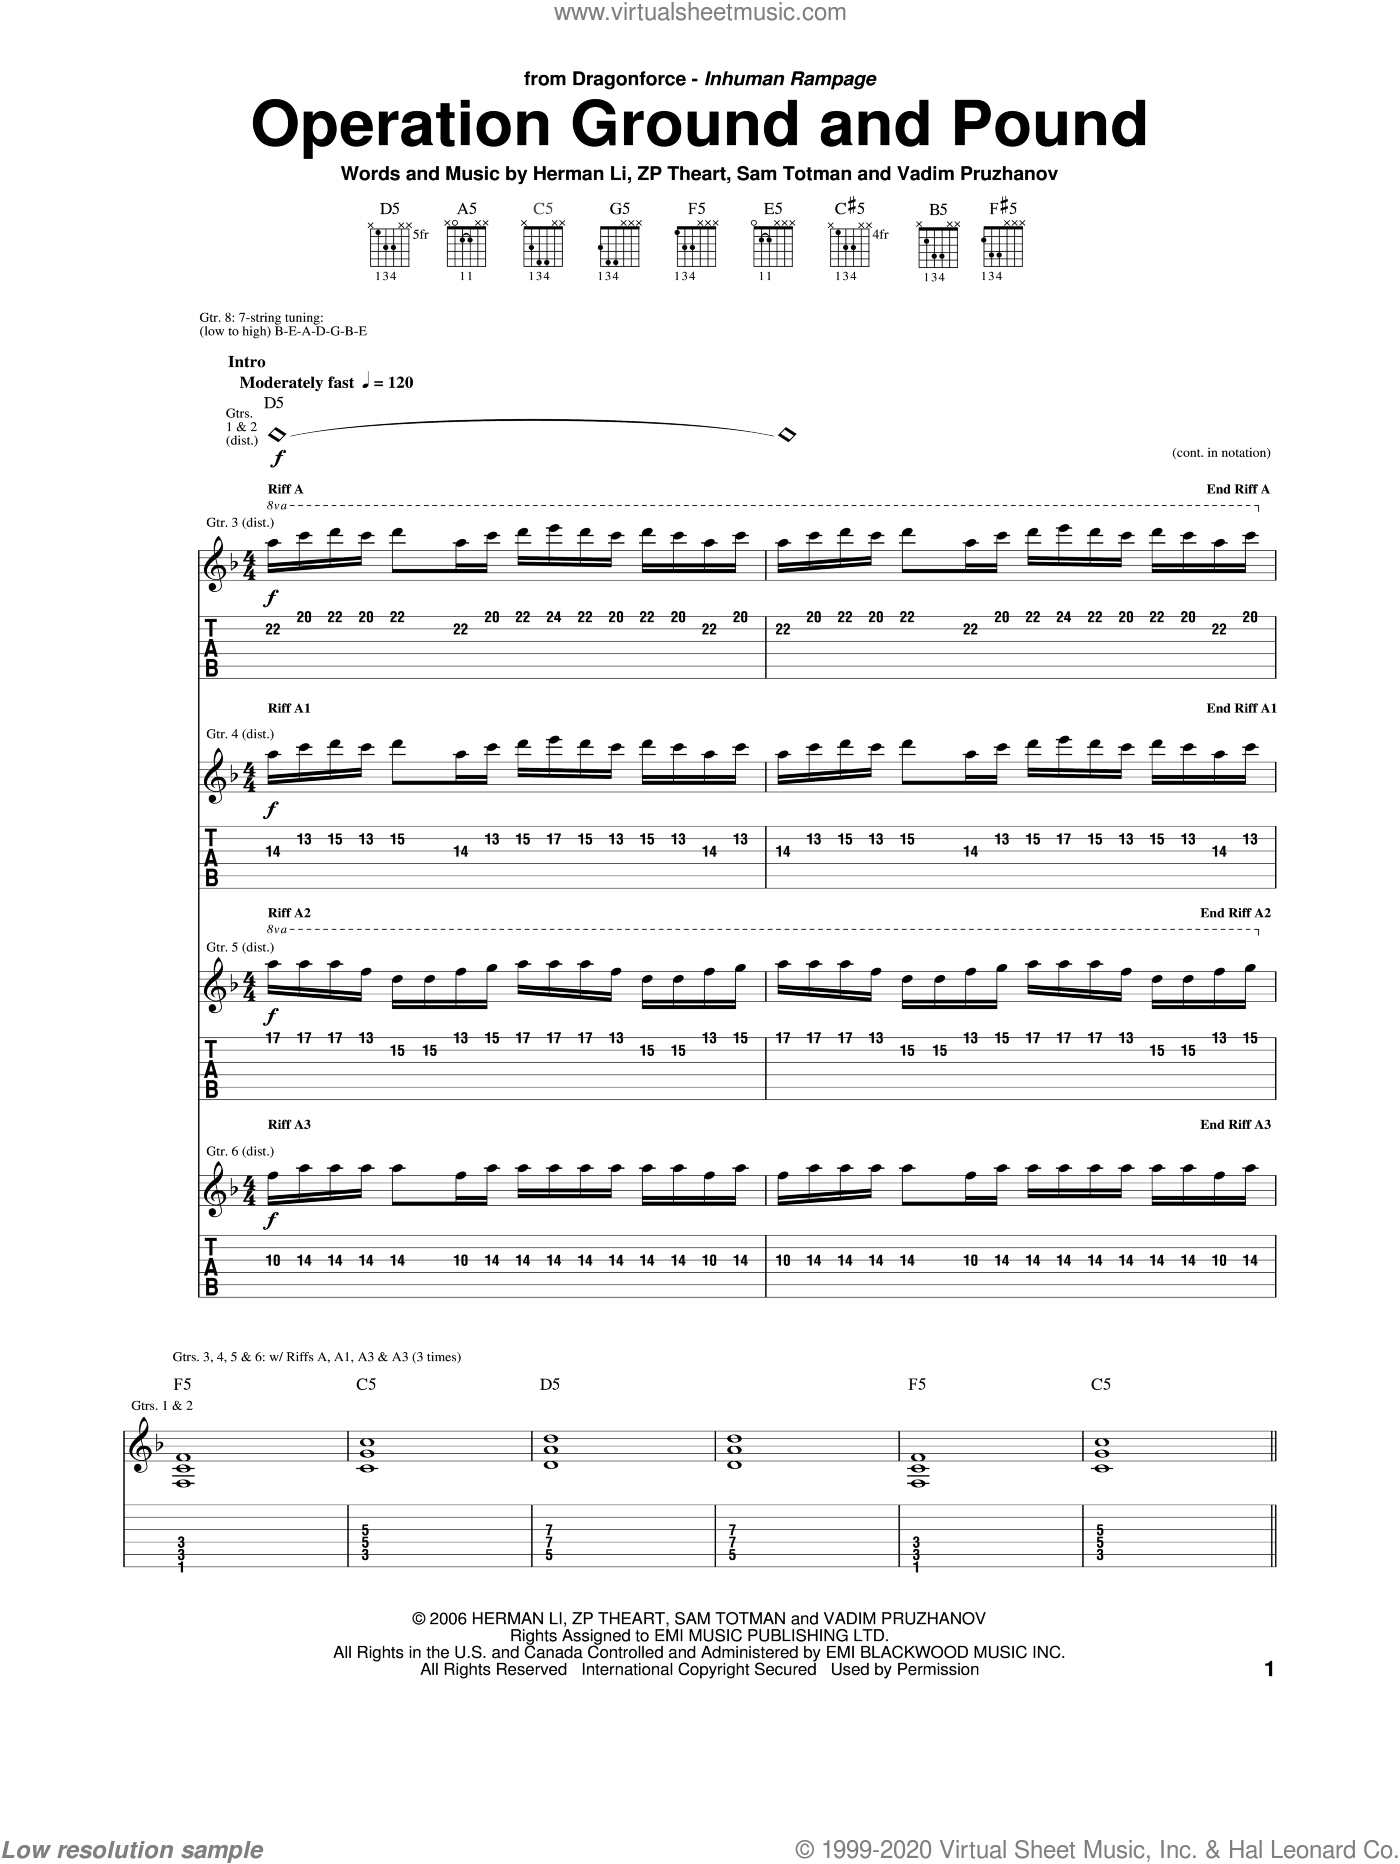 Operation Ground And Pound sheet music for guitar (tablature) by ZP Theart